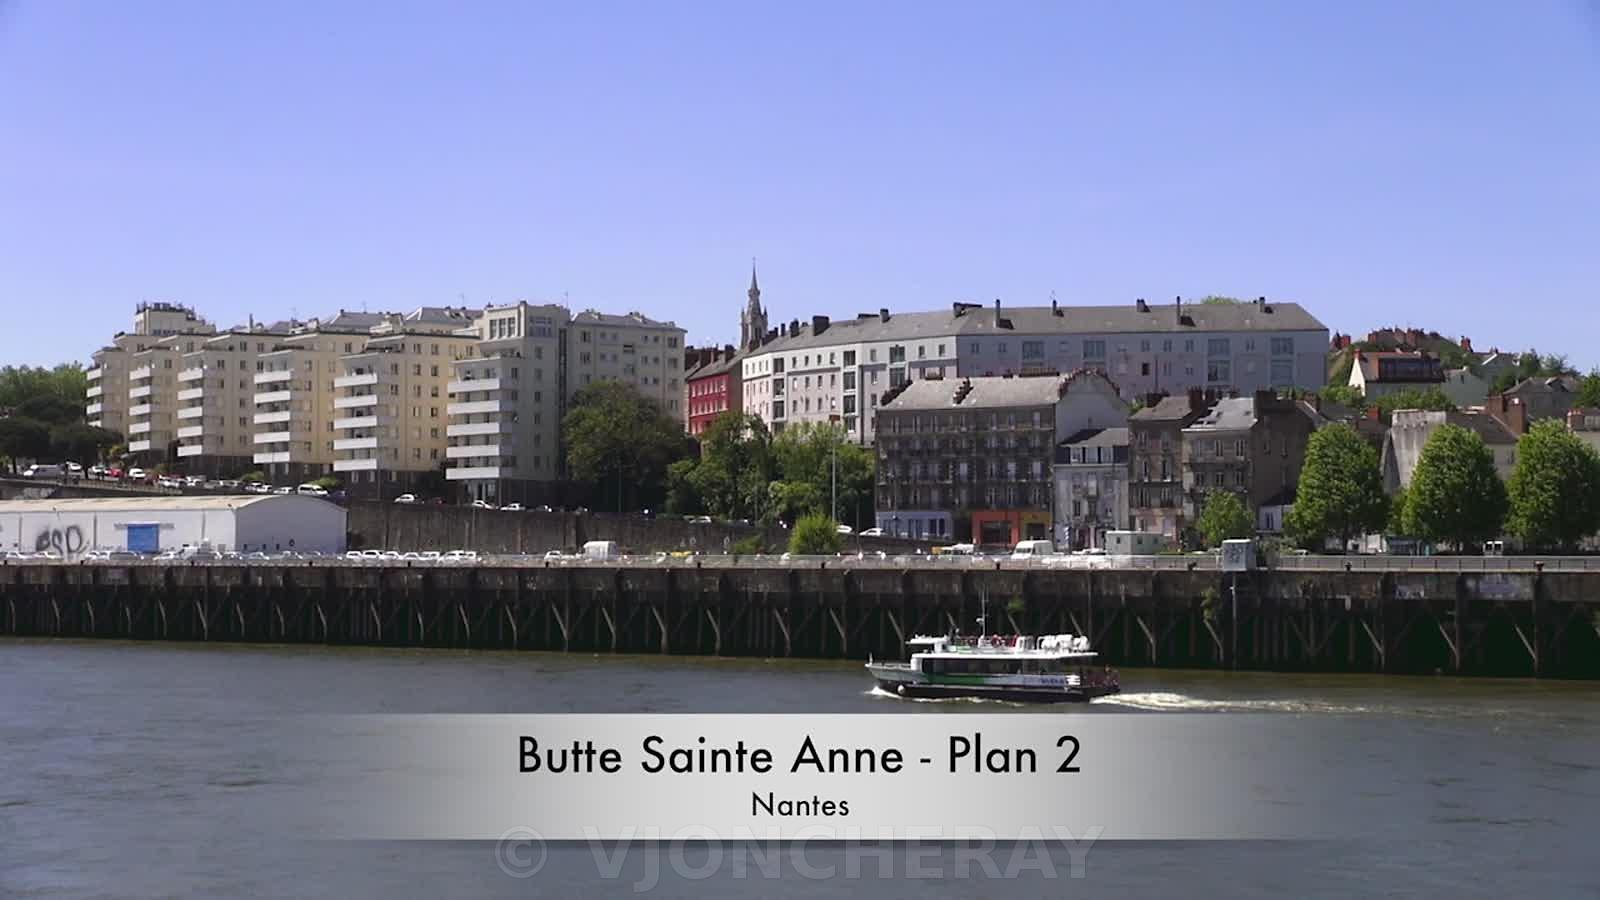 Butte Sainte Anne